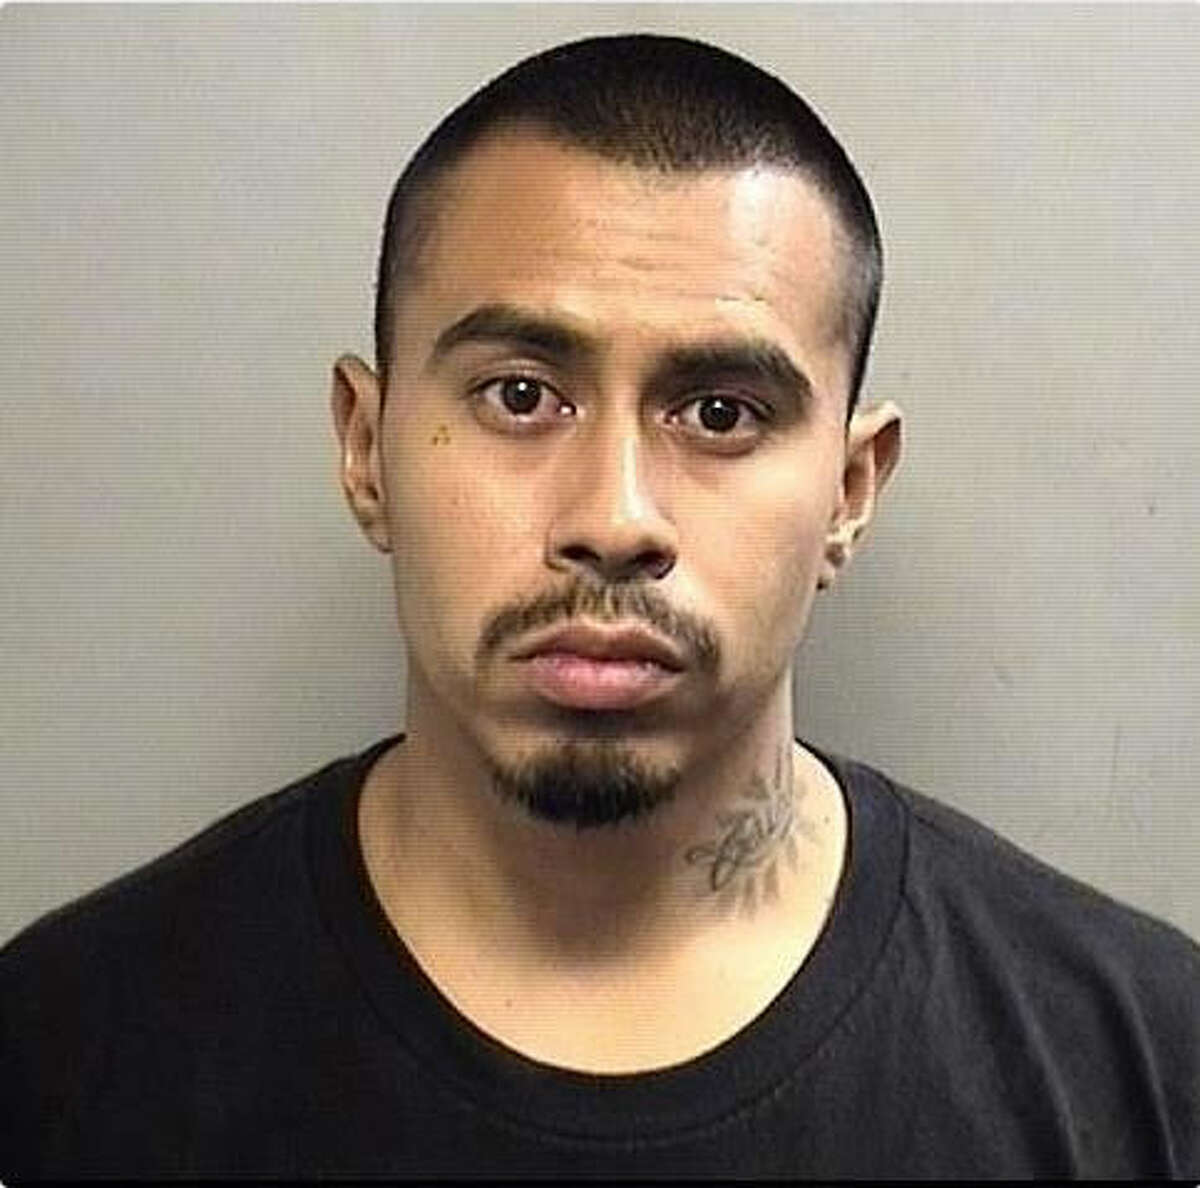 Hector Acosta-Ojeda  28, was arrested in early September of 2017 in connection to the murder of two people who were found in a shallow grave in an Arlington backyard. See some of the strangest crimes that have been committed in Texas so far this year.